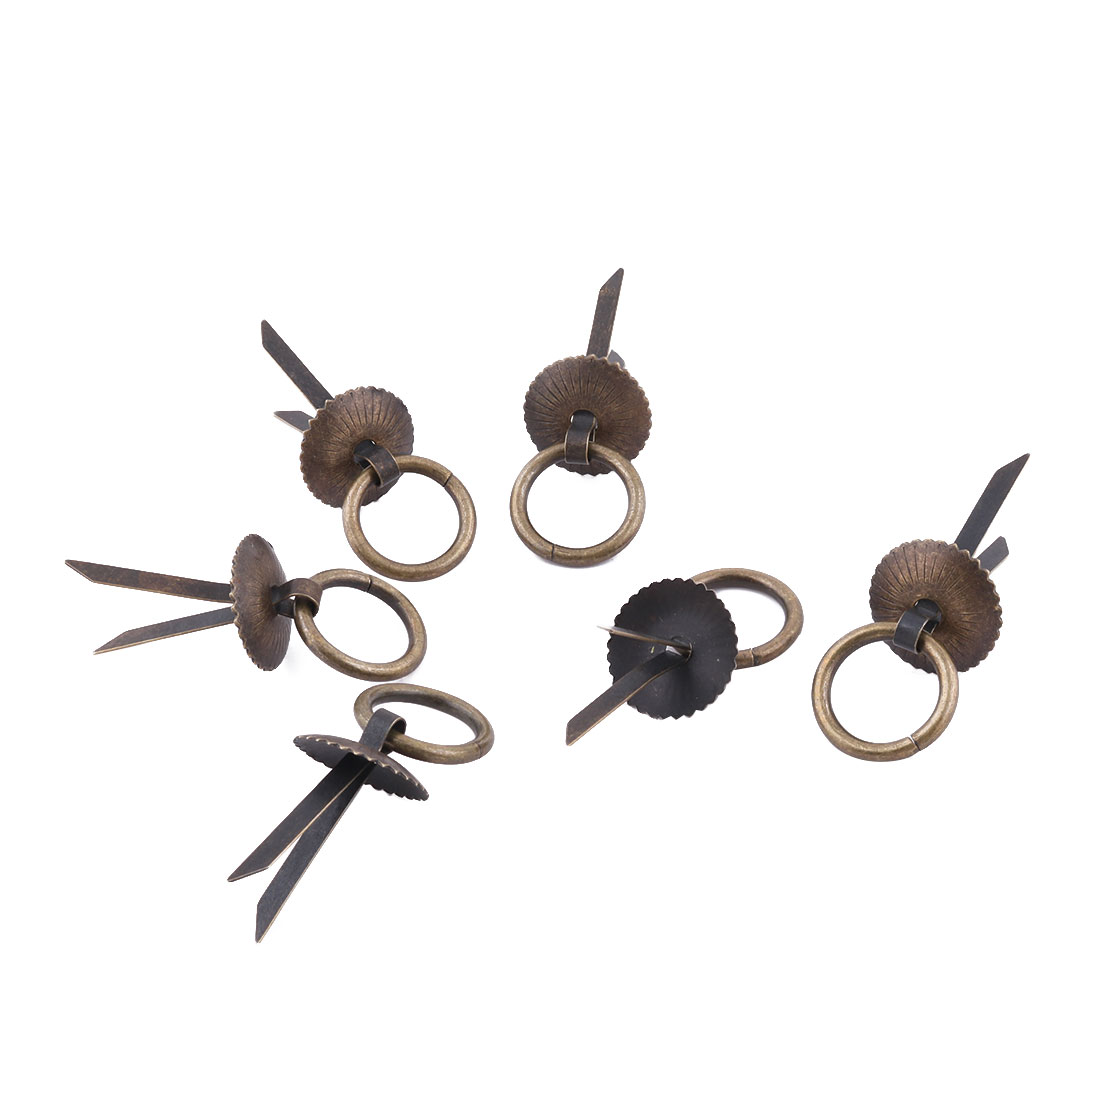 Household Metal Door Wardrobe Closet Cupboard Ring Pull Handle Grip Bronze Tone 6pcs